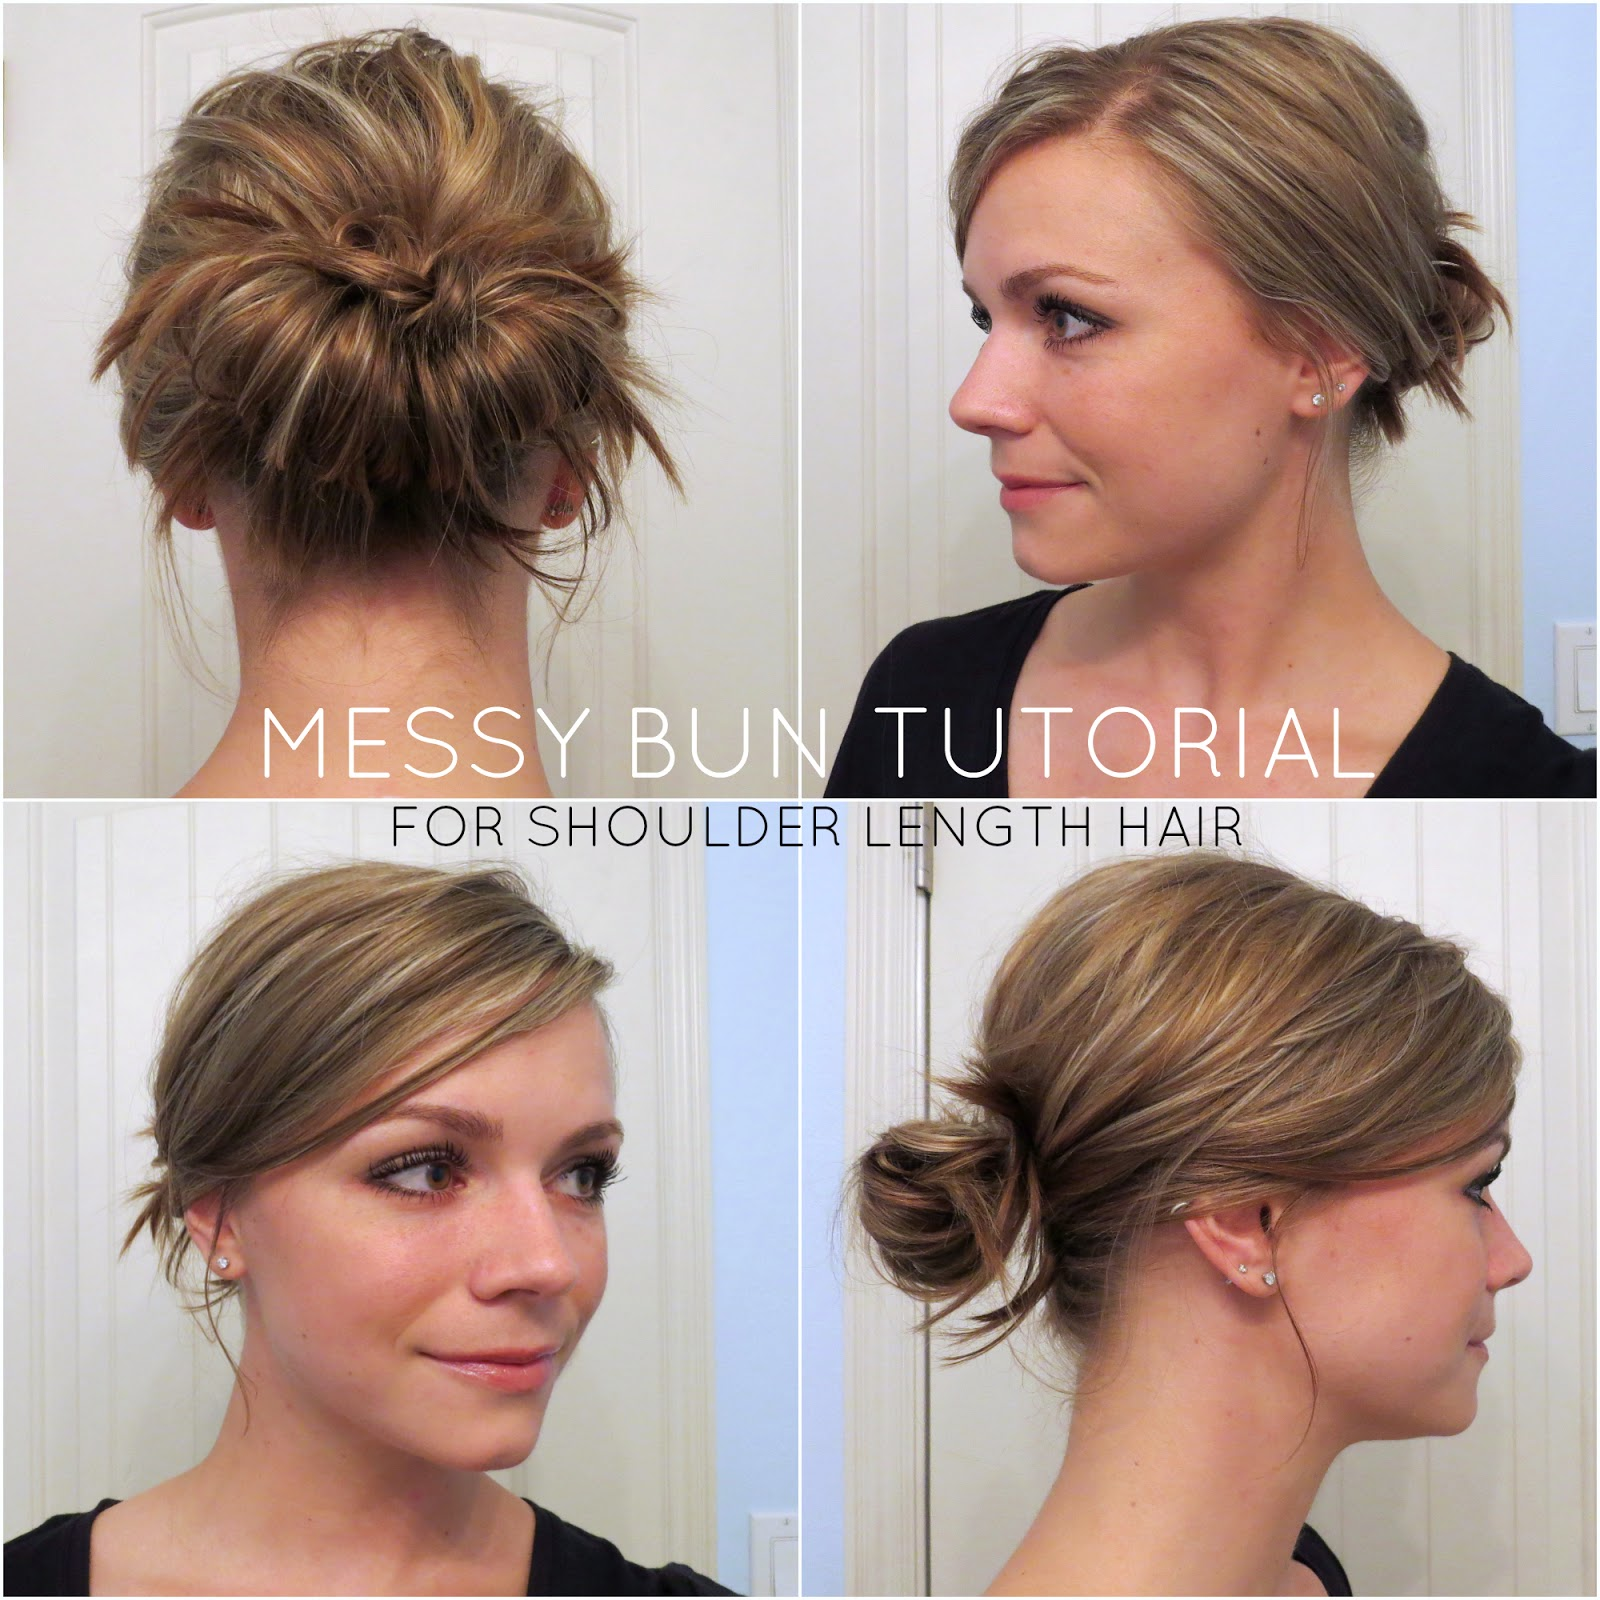 Bye Bye Beehive A Hairstyle Blog Messy Bun For Shoulder Length Hair